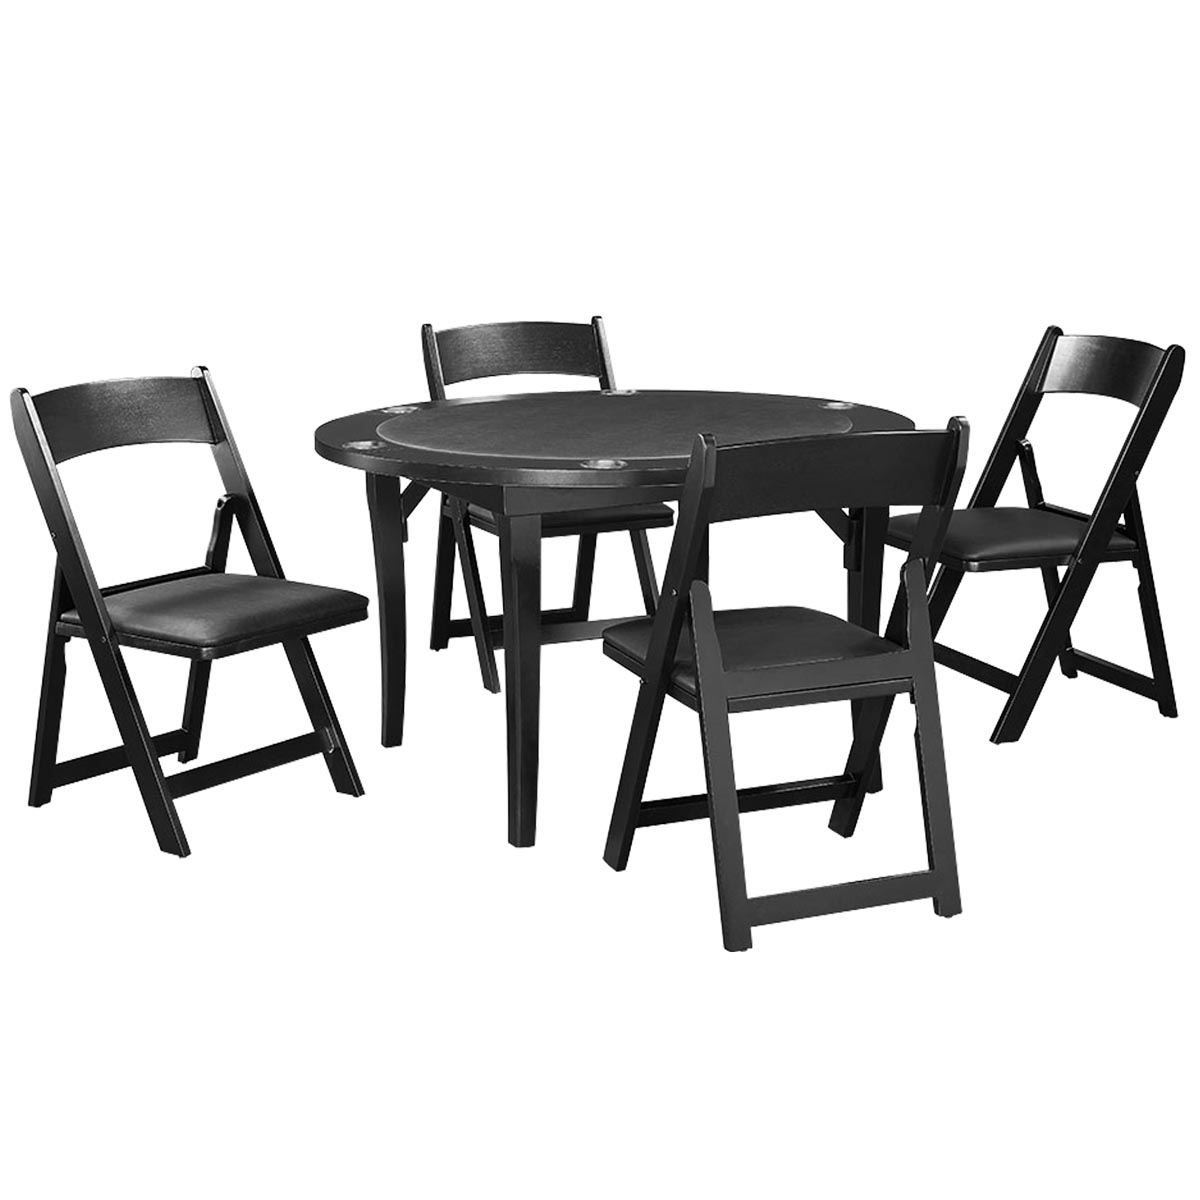 Black Finish with Optional Chairs